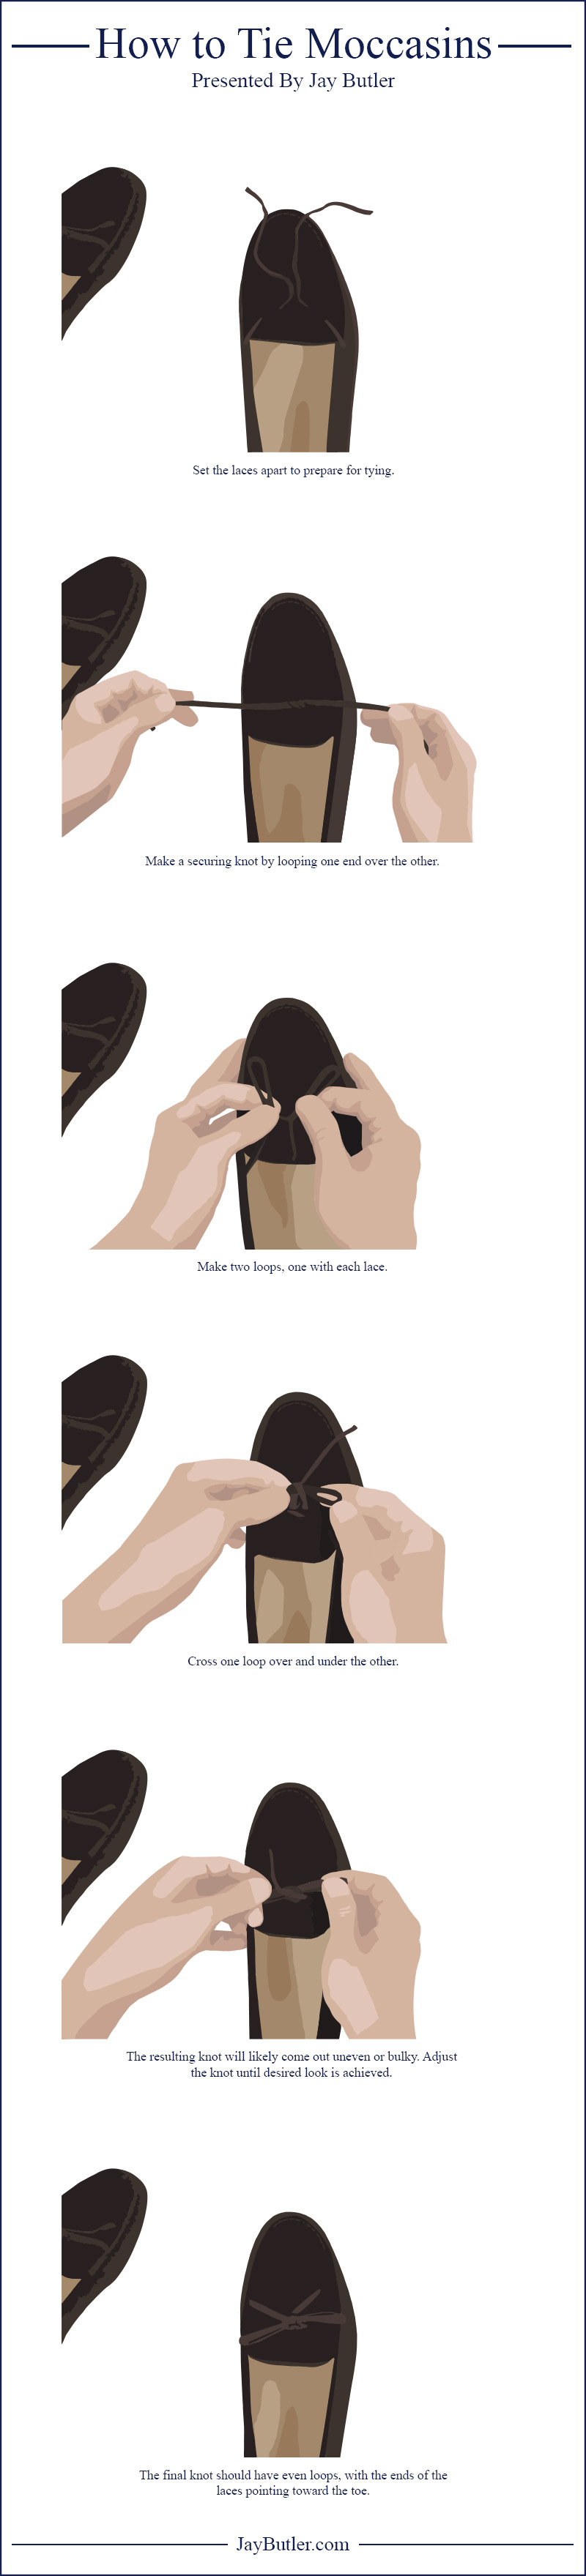 How To Tie Moccasins Moccasins Tie Fashion